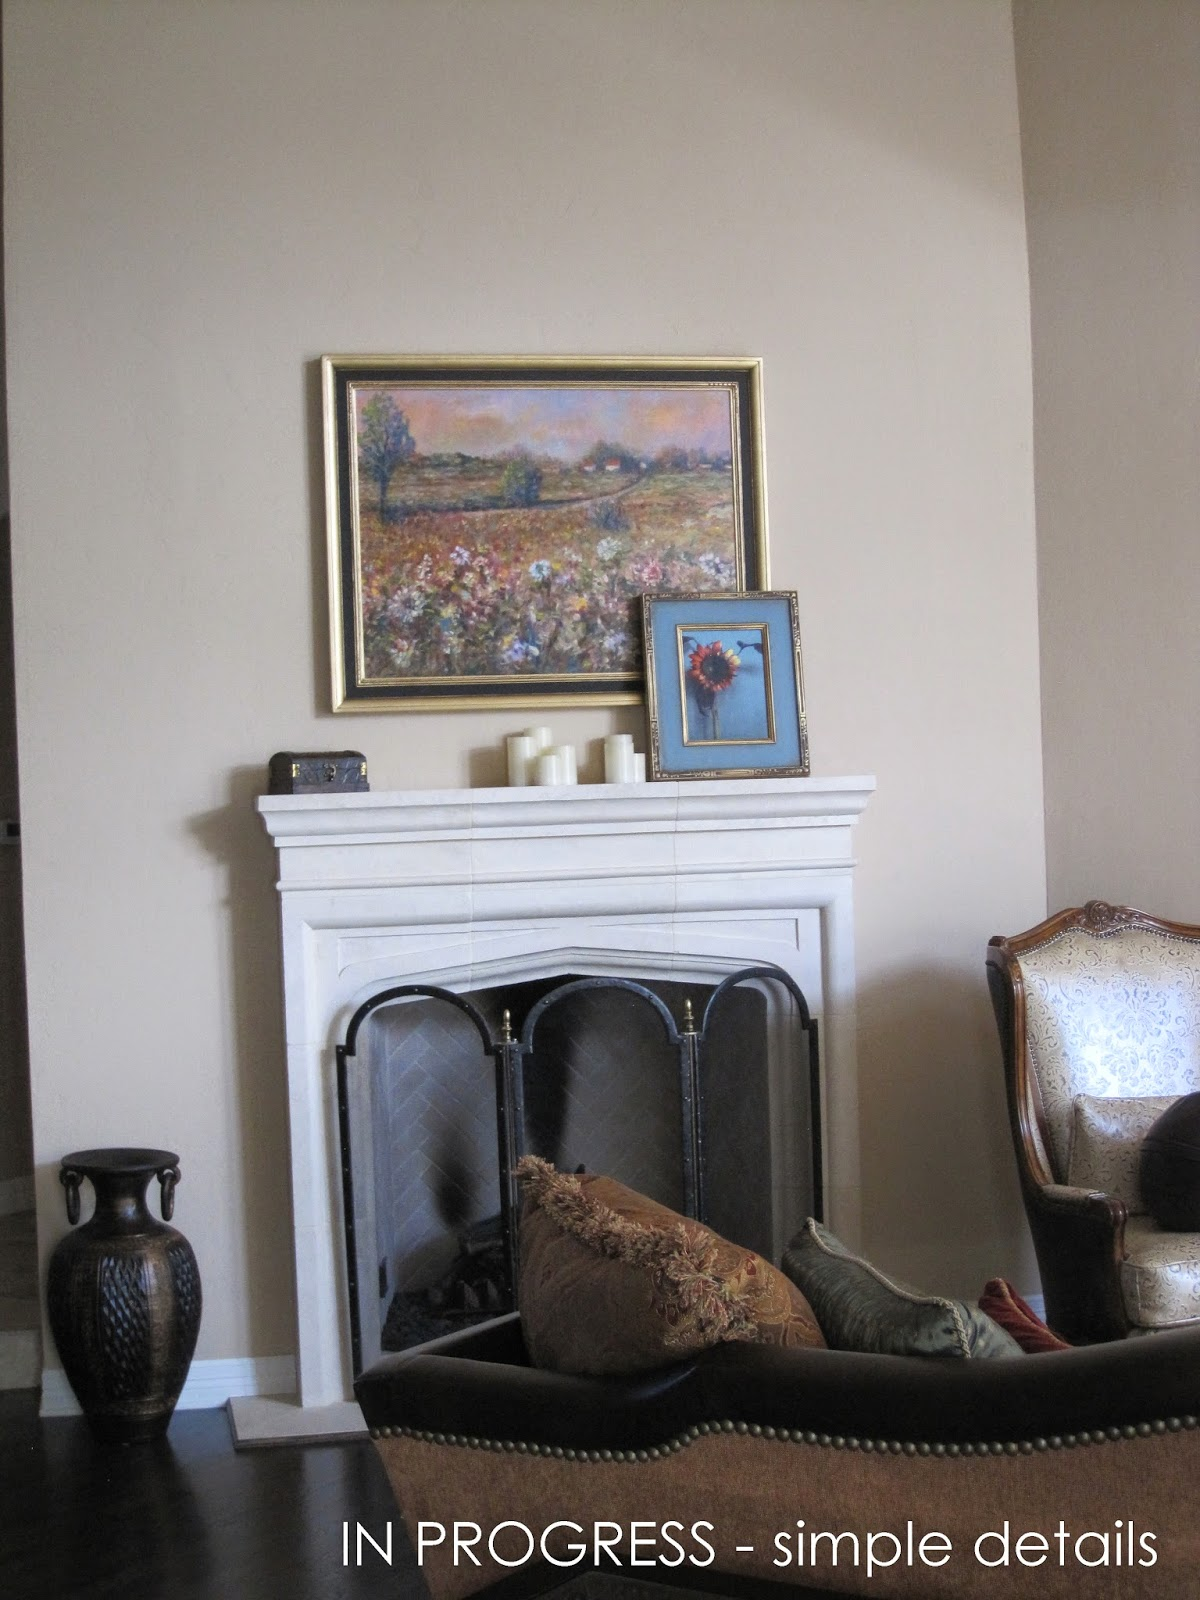 simple details new client fireplace update suggestions